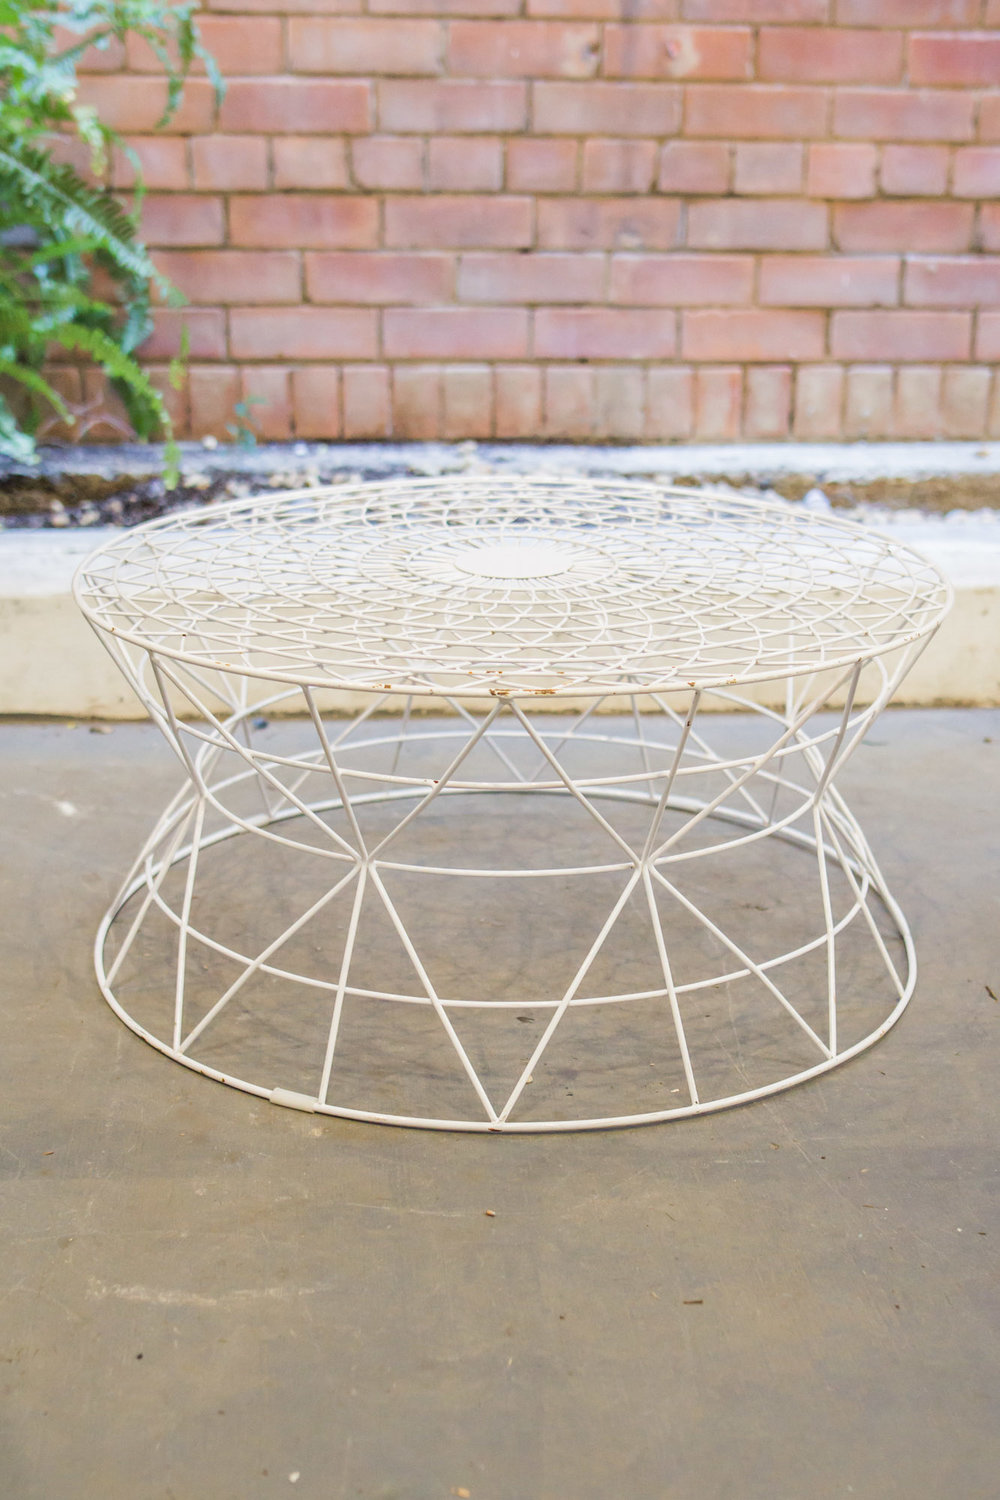 AVIDEAS-INVENTORY-TABLES-BARS-White+Wire+Coffee+Table.jpg